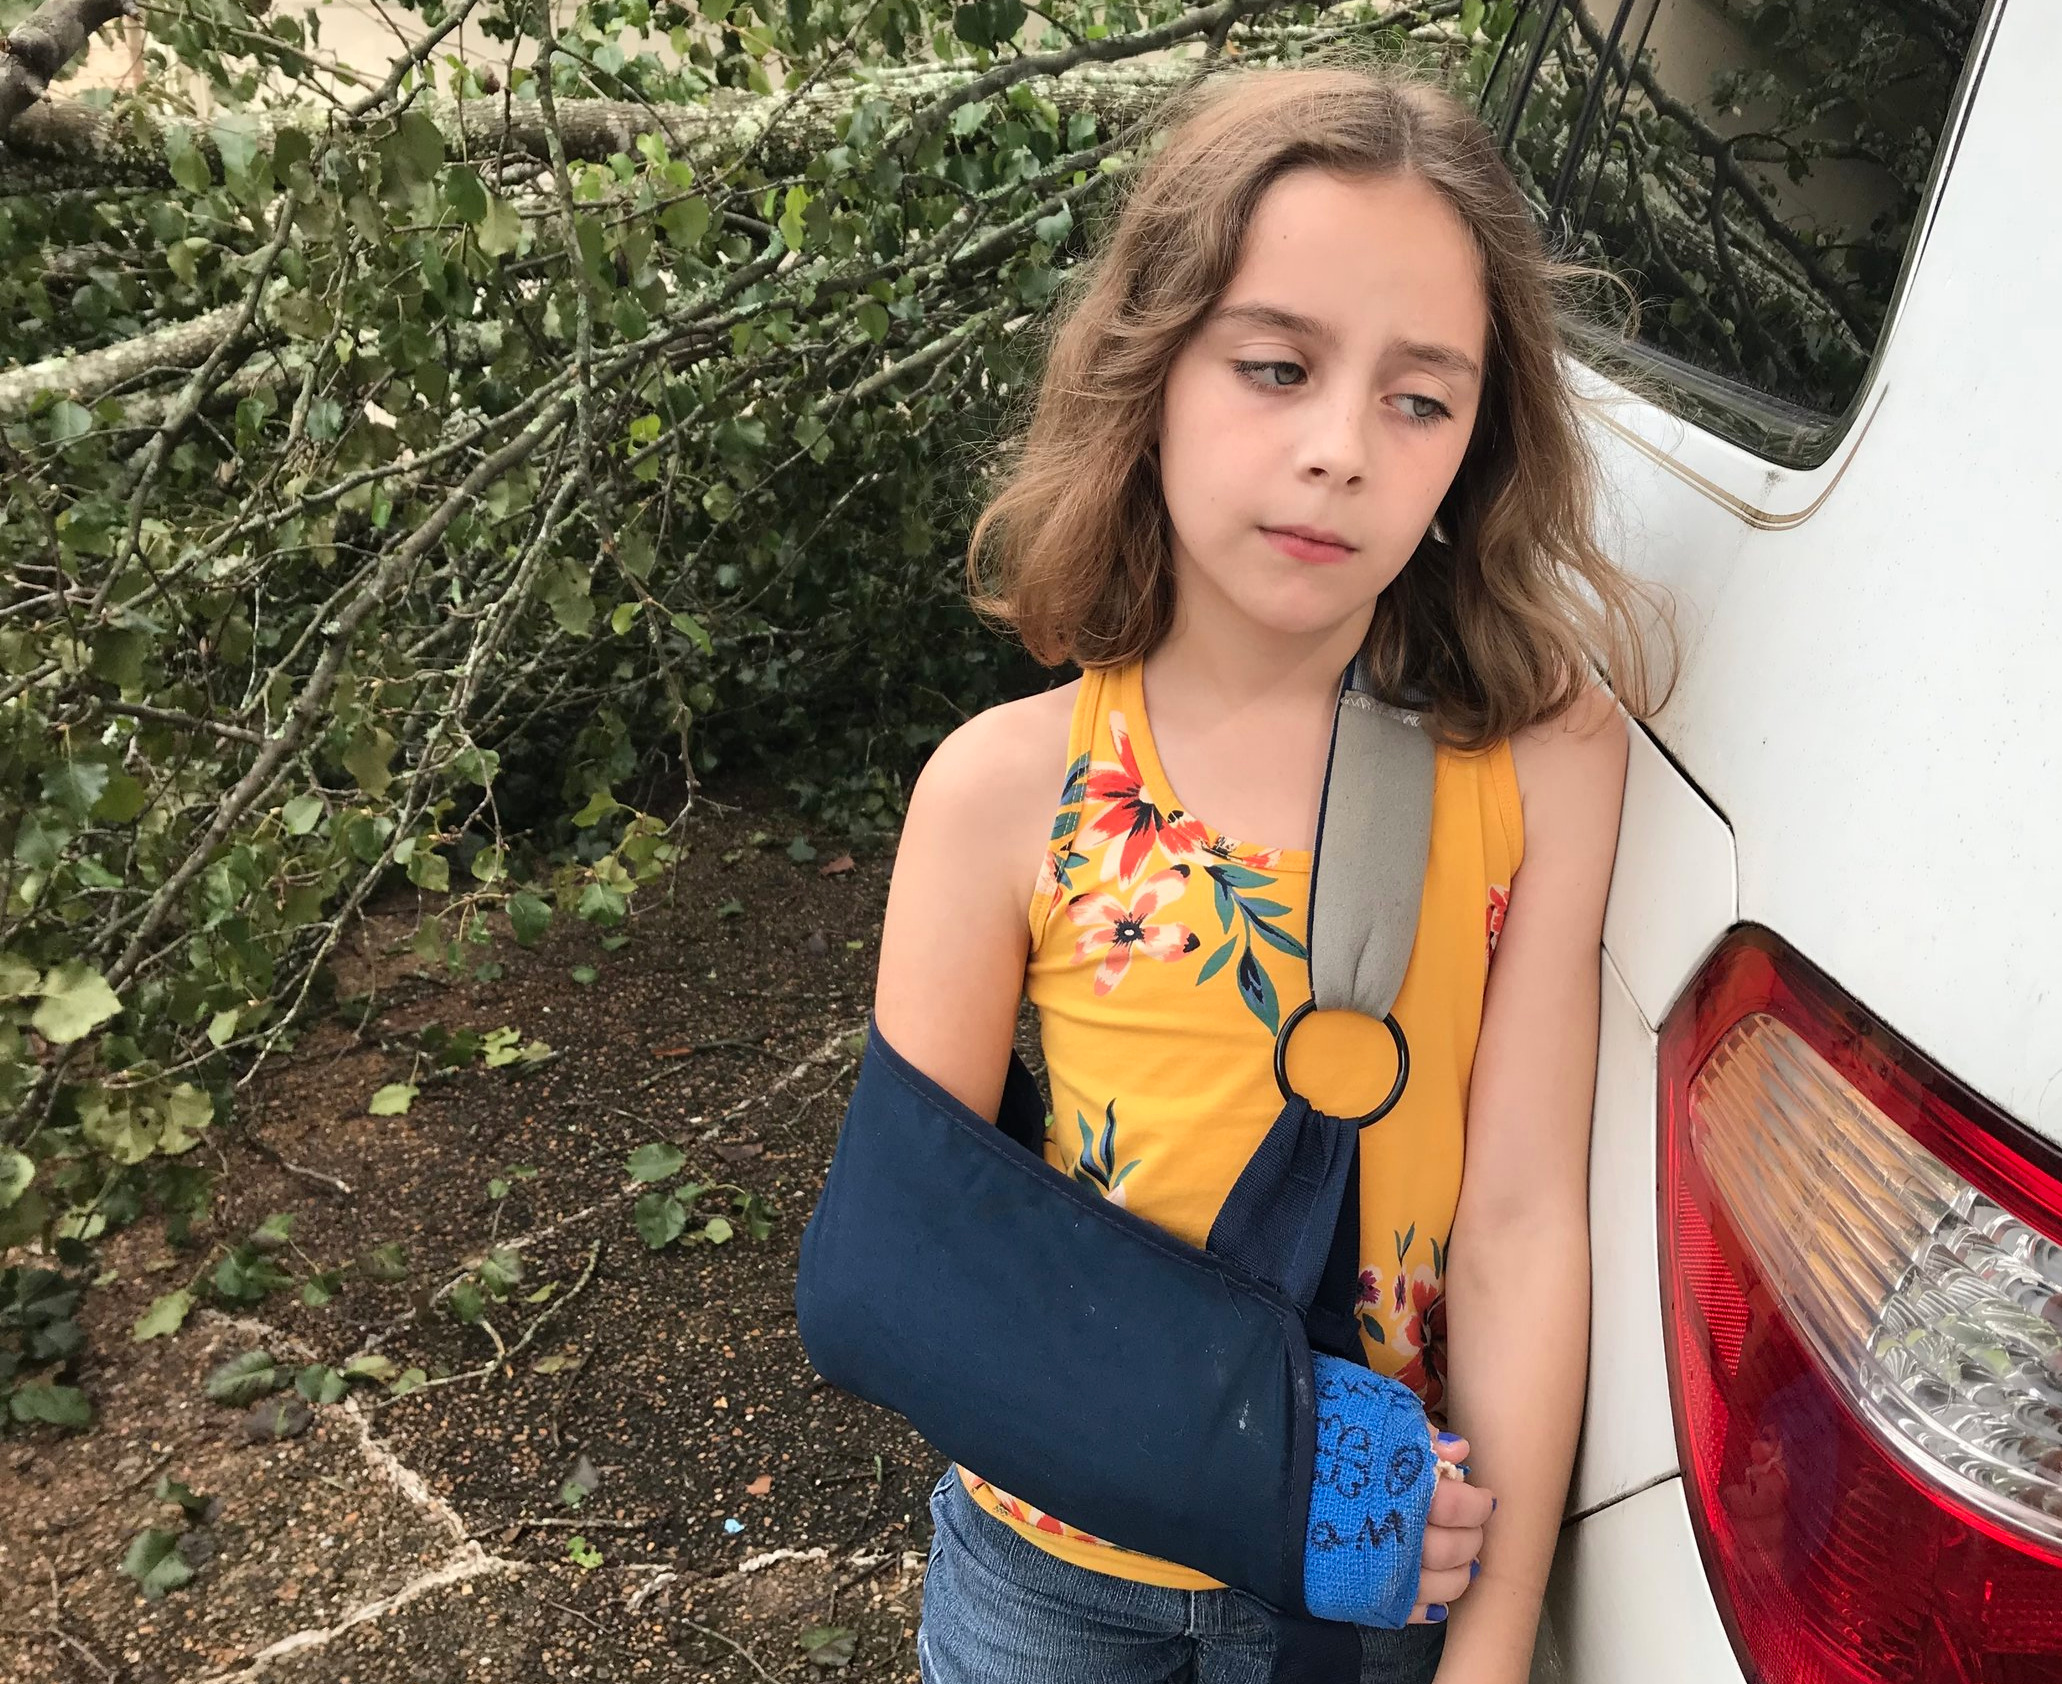 Lily trying on her most pitiful face for comedic effect beside the crushed van.